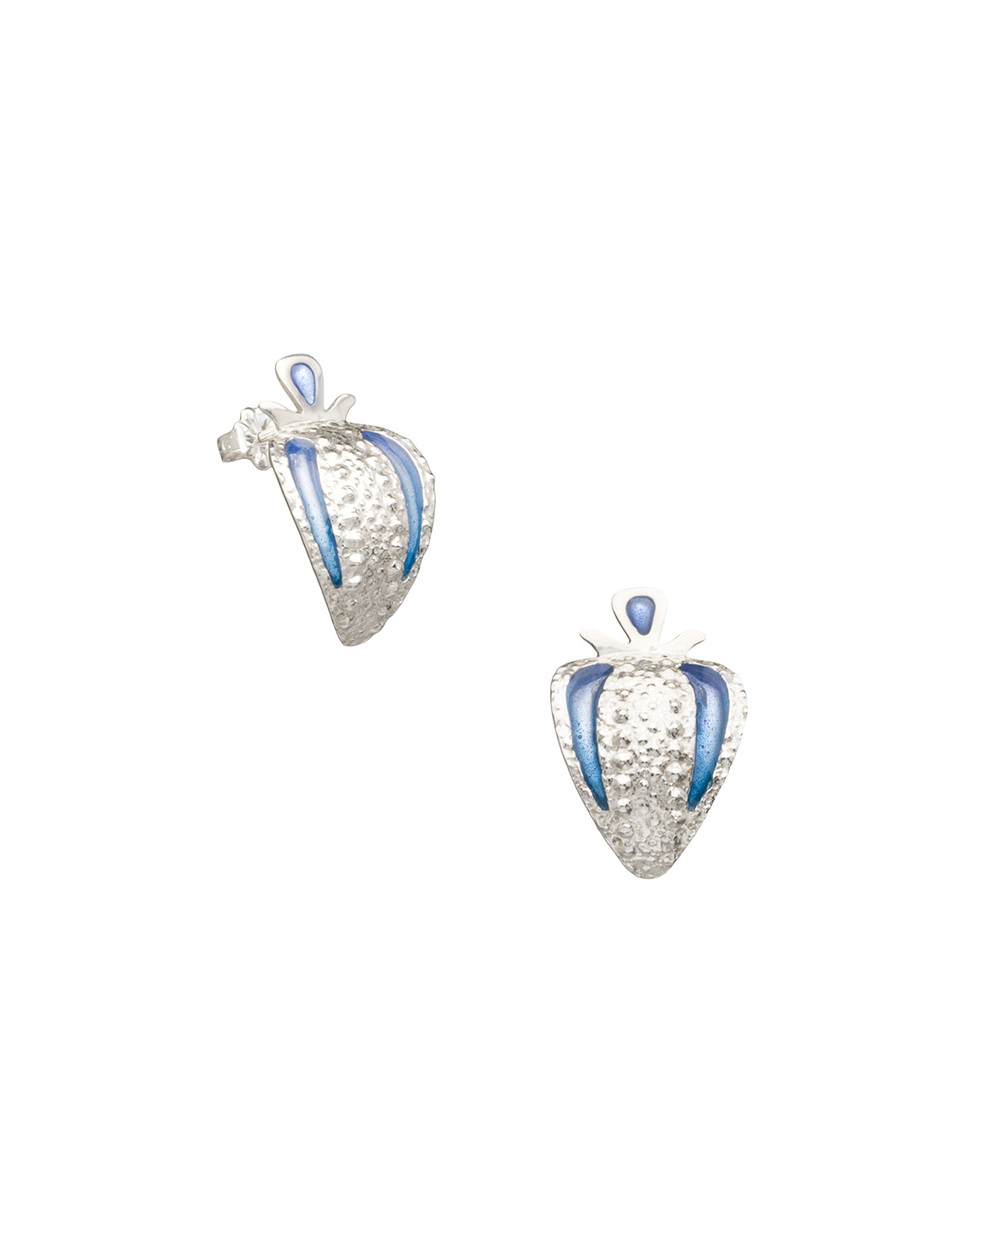 2015-10-Mary-Lynn-Podiluk-Argot-Earrings-S07ca.jpg